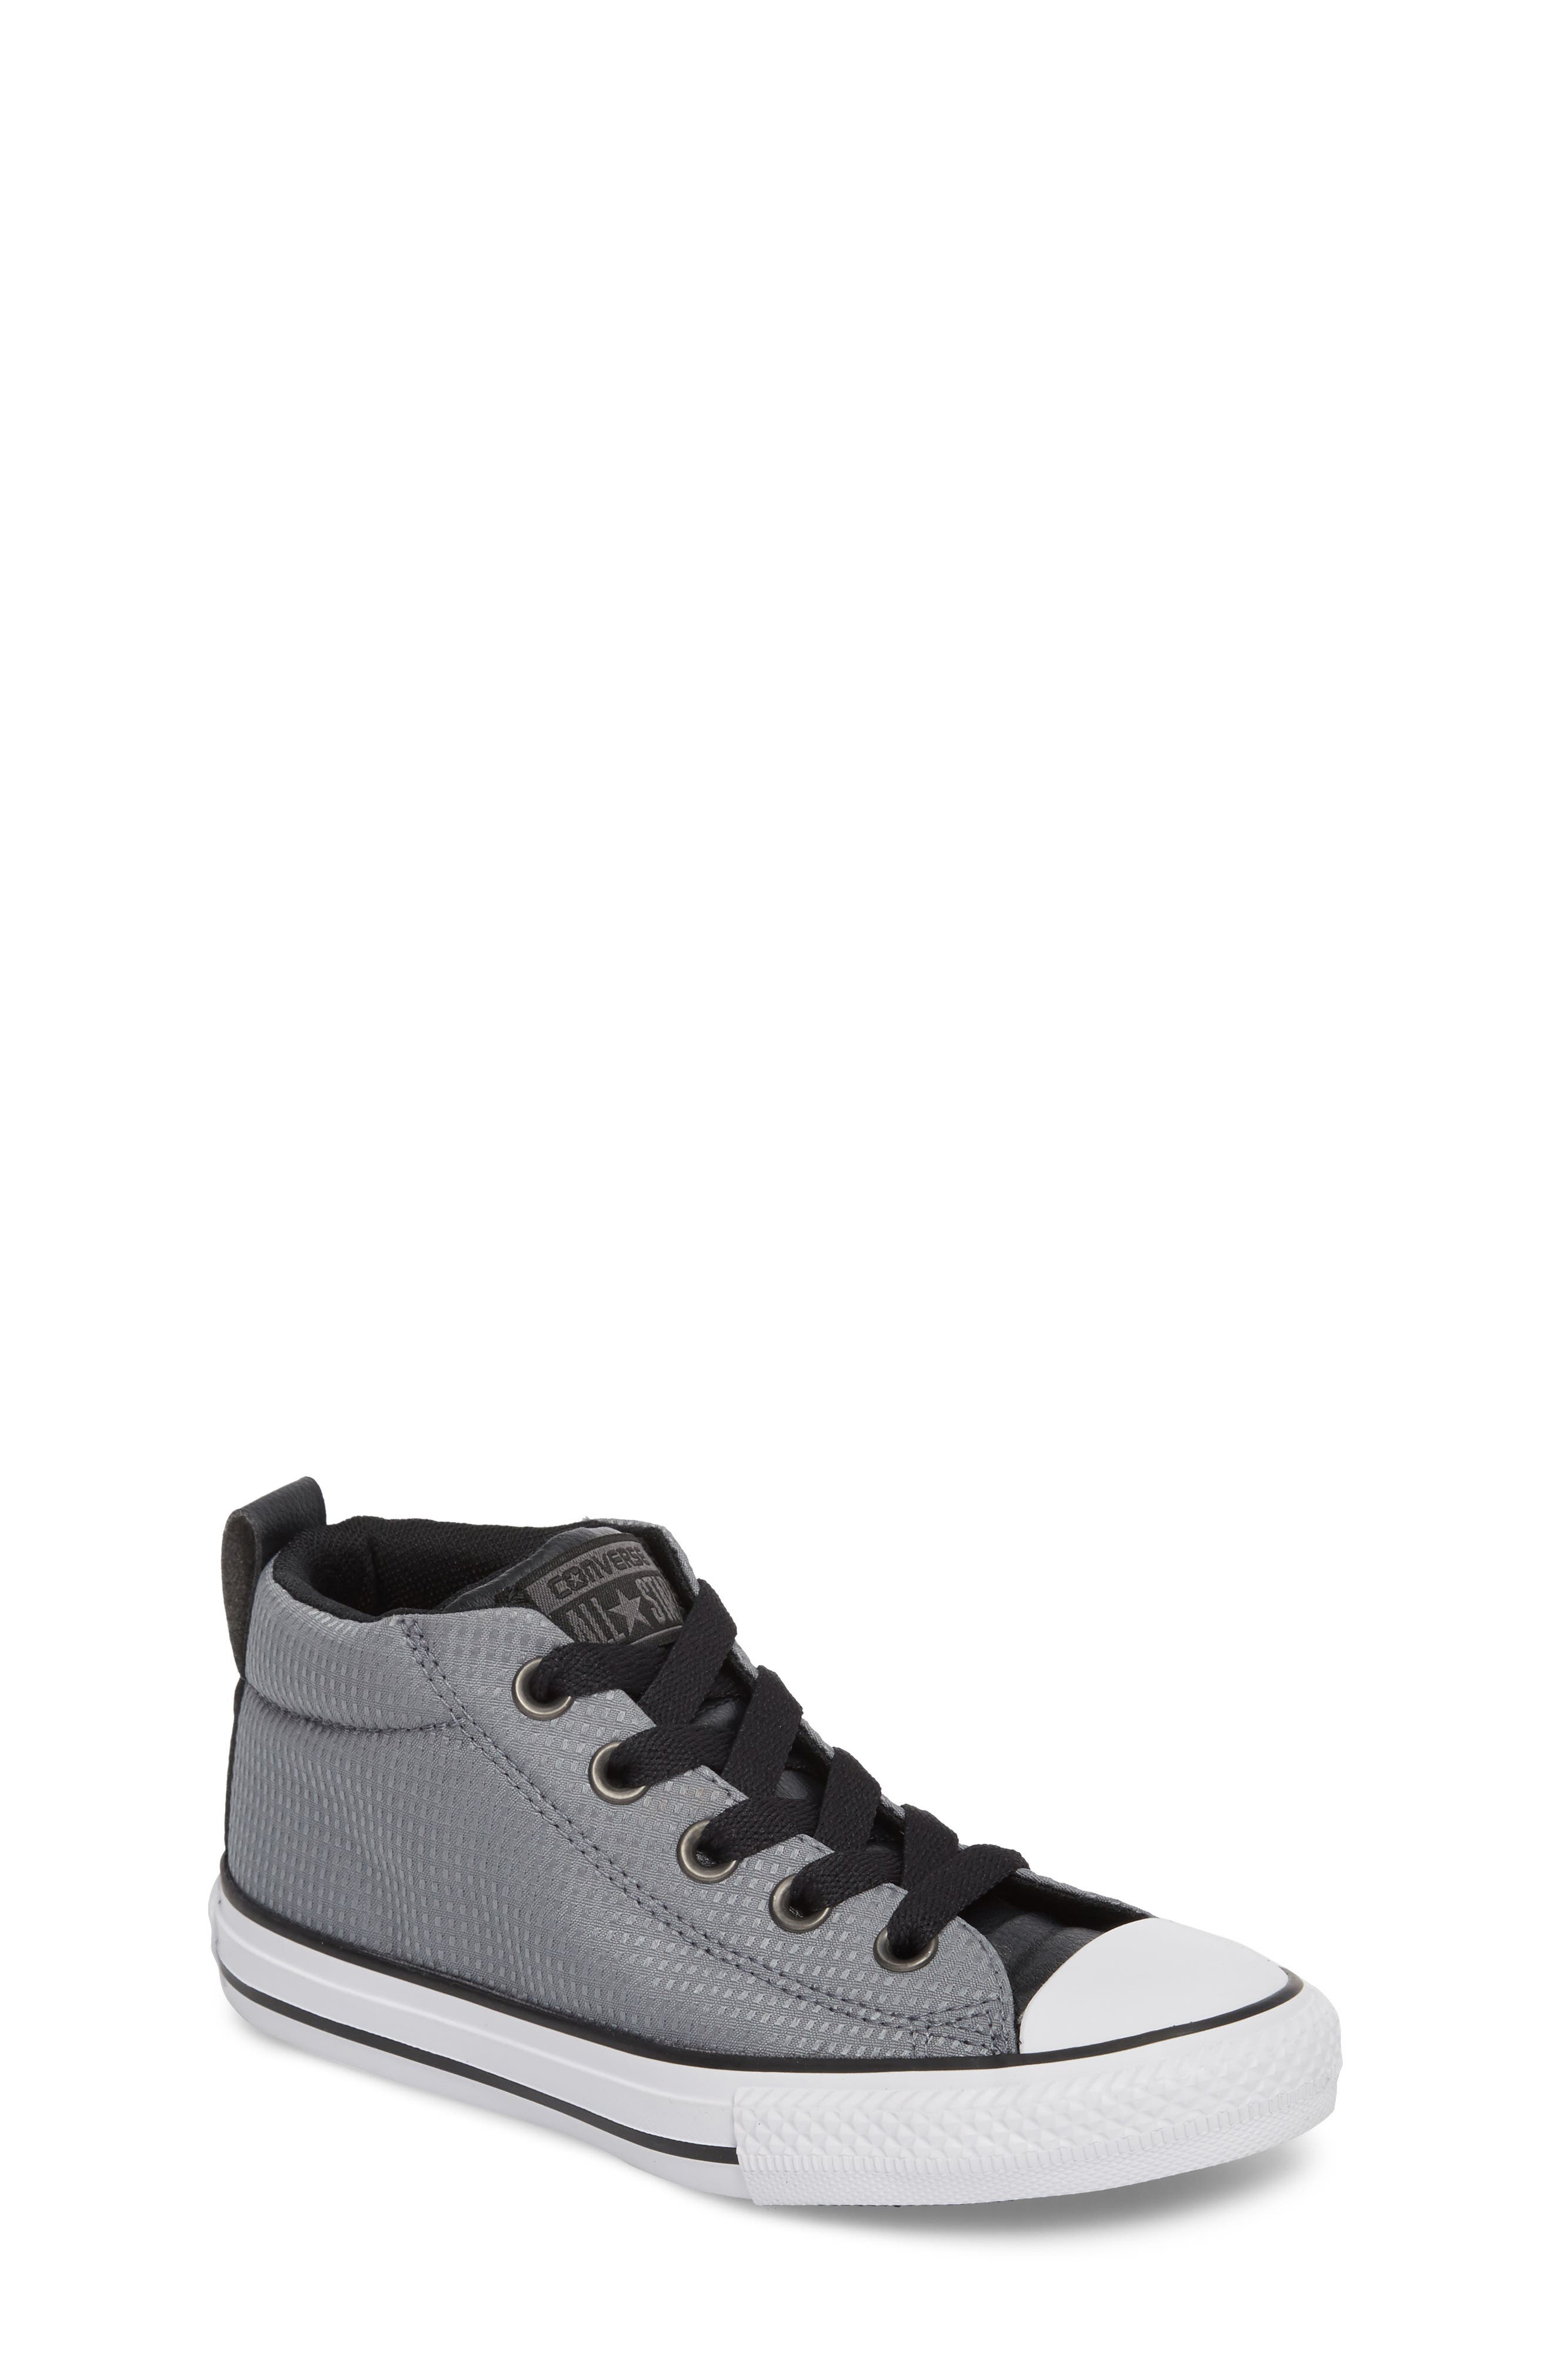 Chuck Taylor<sup>®</sup> All Star<sup>®</sup> Street Mid Backpack Sneaker,                             Main thumbnail 1, color,                             039